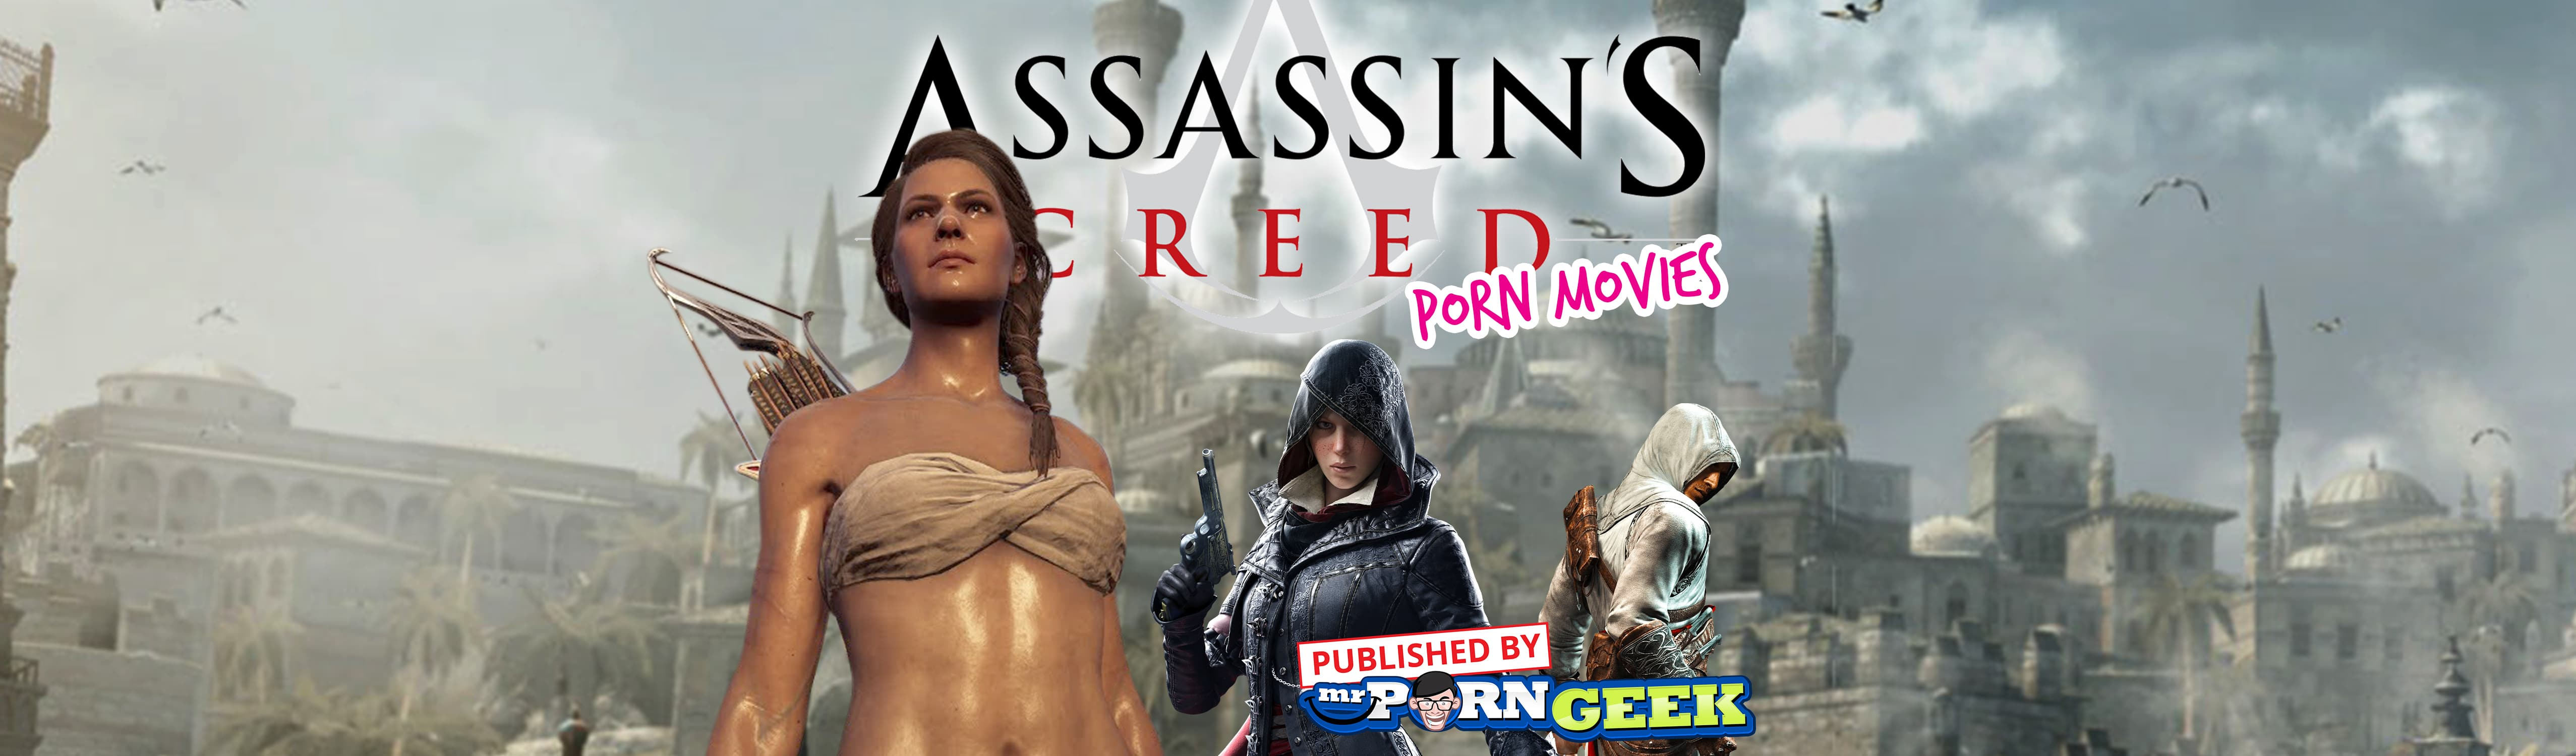 A Sex Odyssey Porn Video top assassins creed porn movies are at mr. porn geek